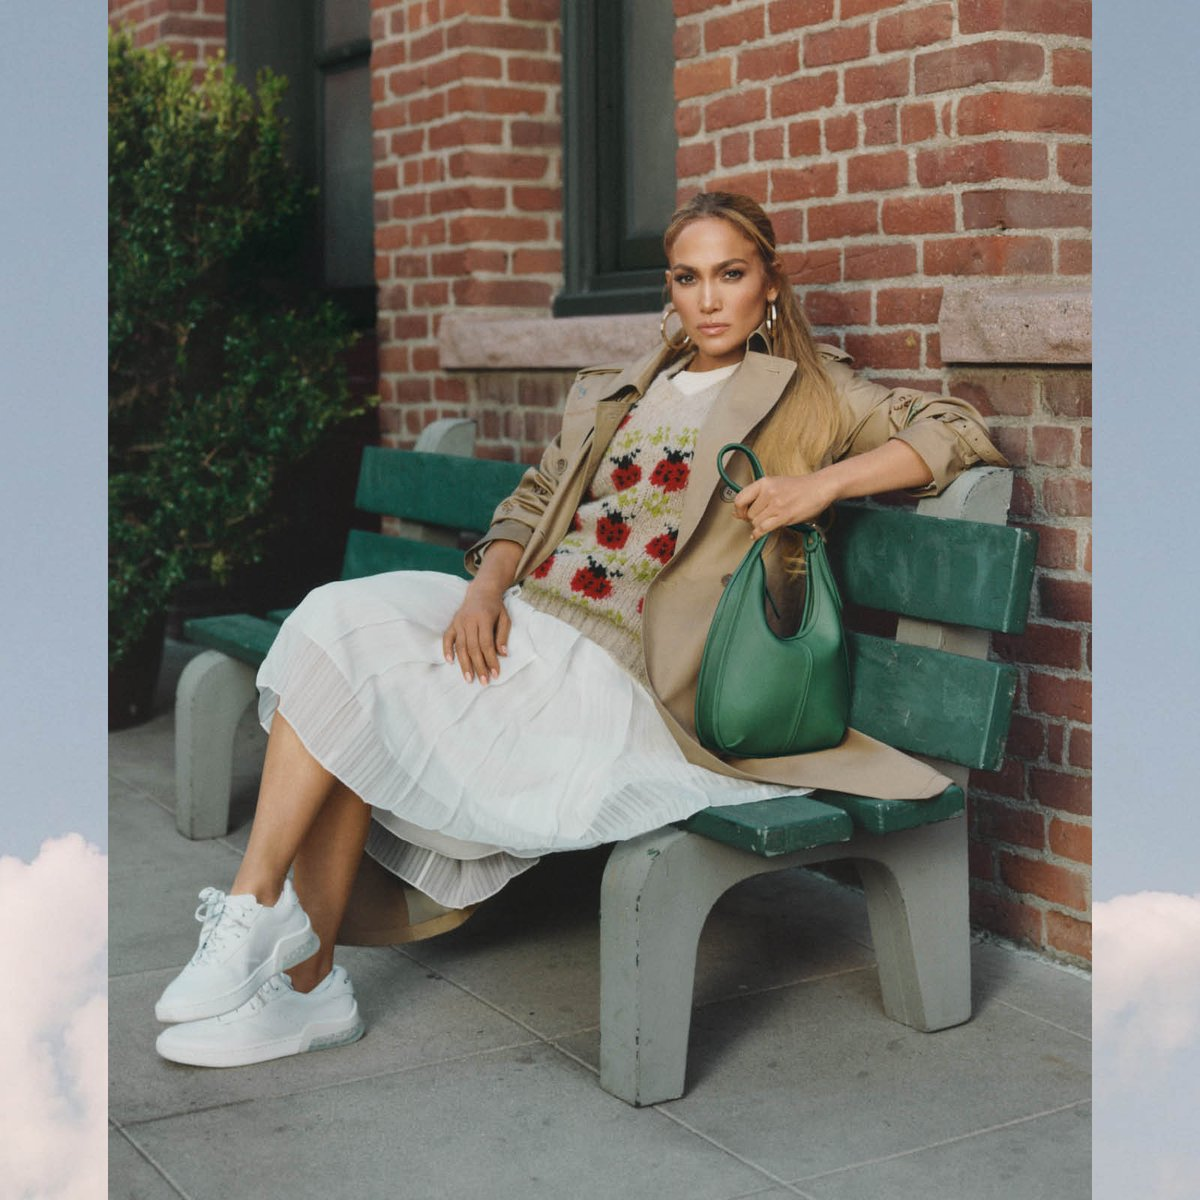 New things to love (forever). Meet the #TheErgoBag, as seen on #JenniferLopez. Inspired by an archival style & thoughtfully-reimagined for today, this over-the-shoulder bag is crafted to last. Follow along for more that says spring—🐞s included.  #CoachNY